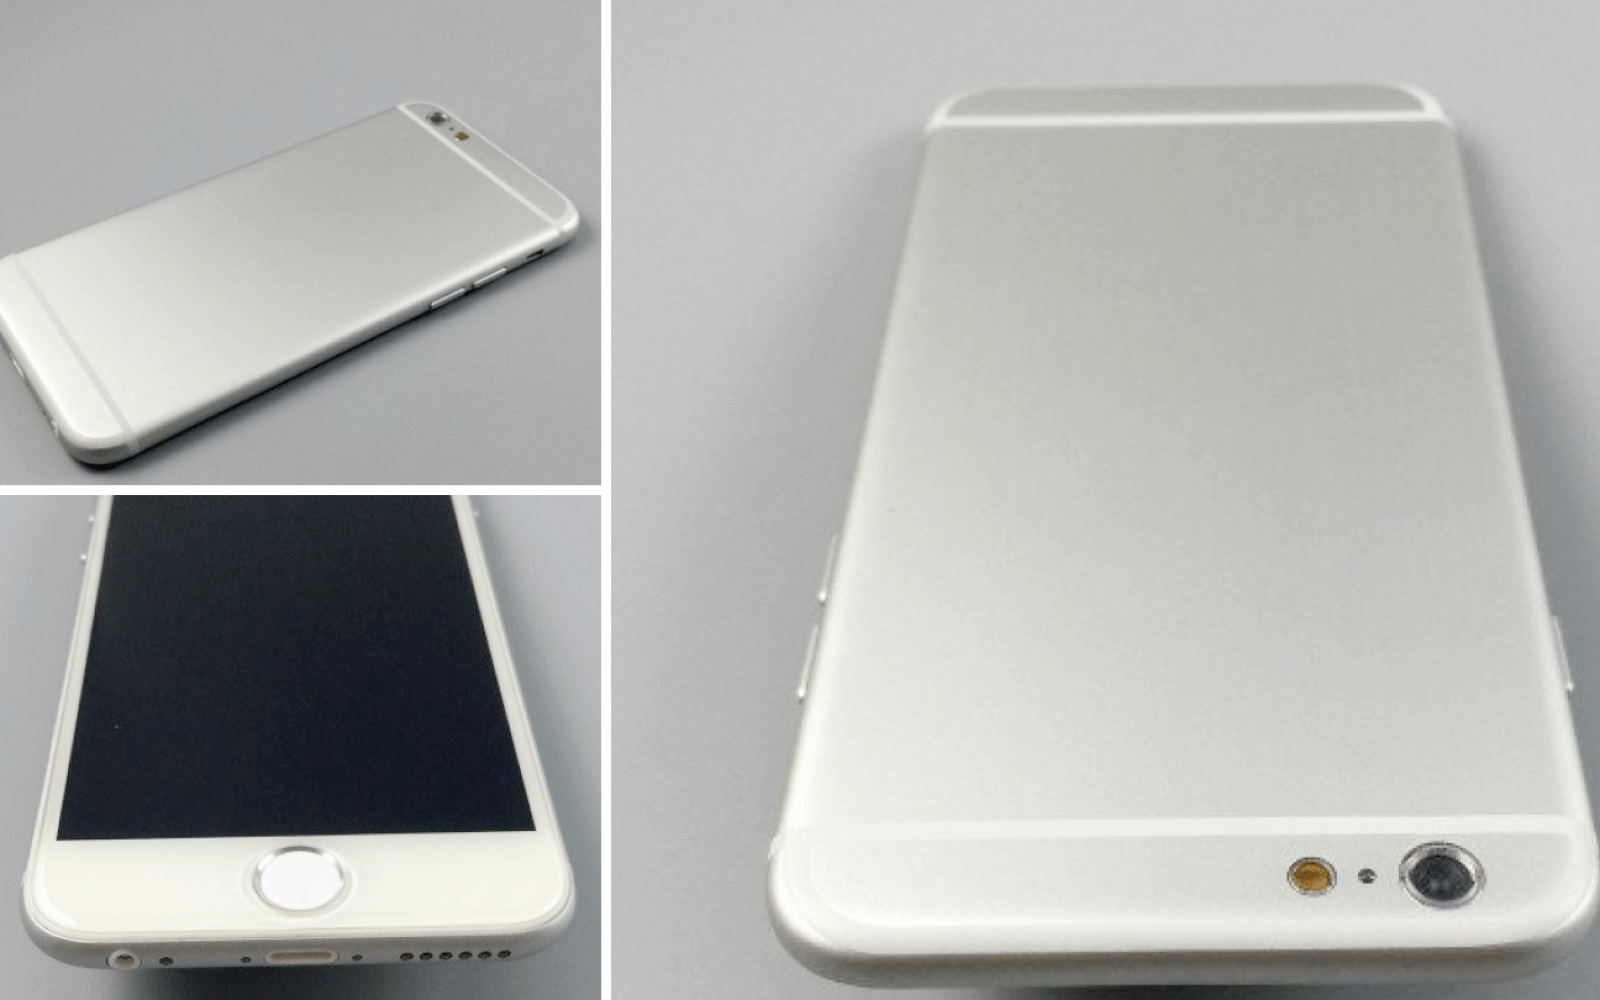 Sketchy report claims Pegatron has received 15% of orders for Apple's 4.7-inch iPhone 6